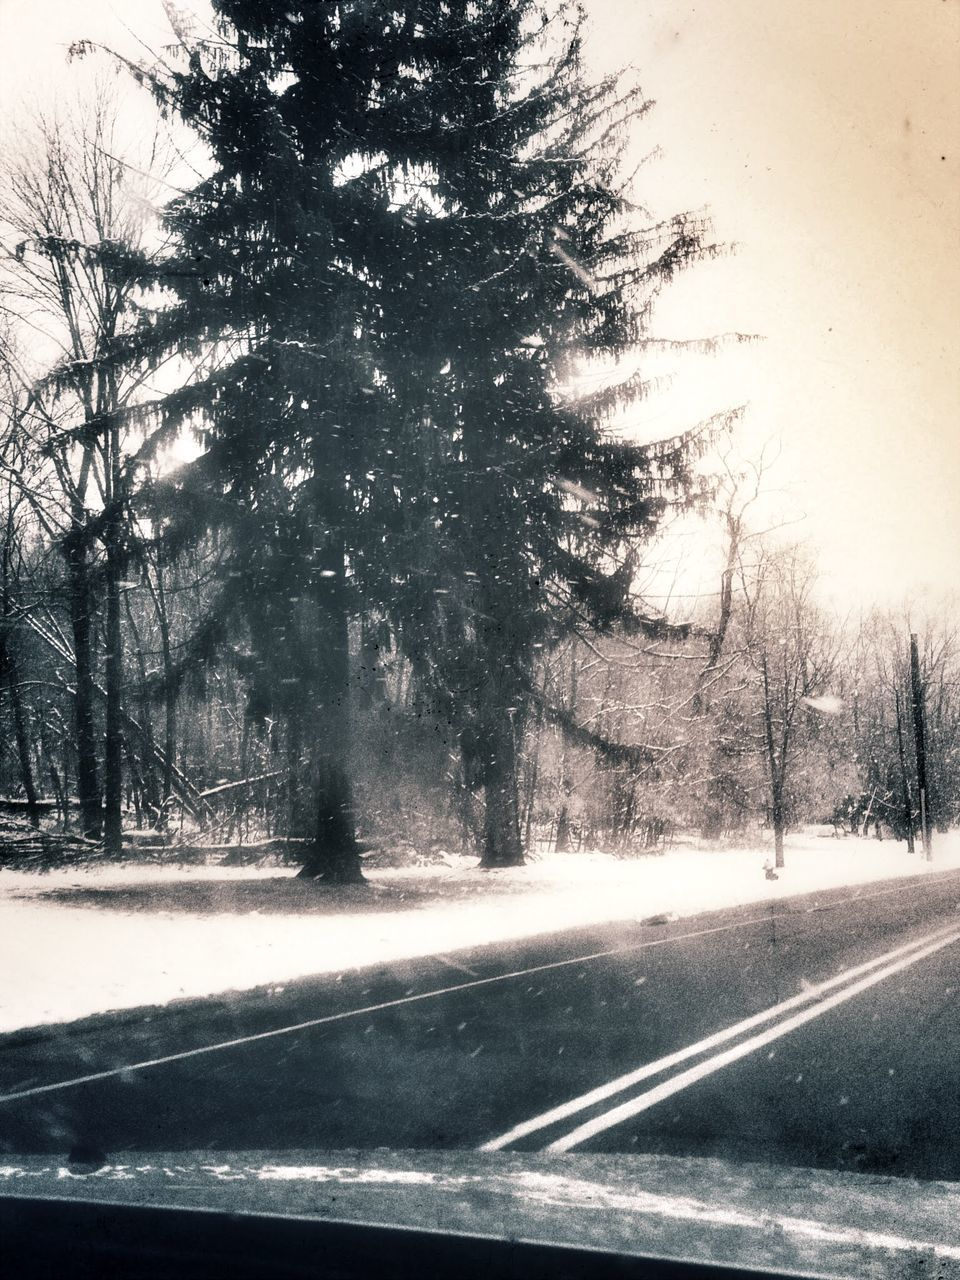 tree, road, transportation, winter, nature, snow, car, cold temperature, the way forward, tranquil scene, tranquility, day, bare tree, landscape, no people, scenics, beauty in nature, outdoors, branch, clear sky, sky